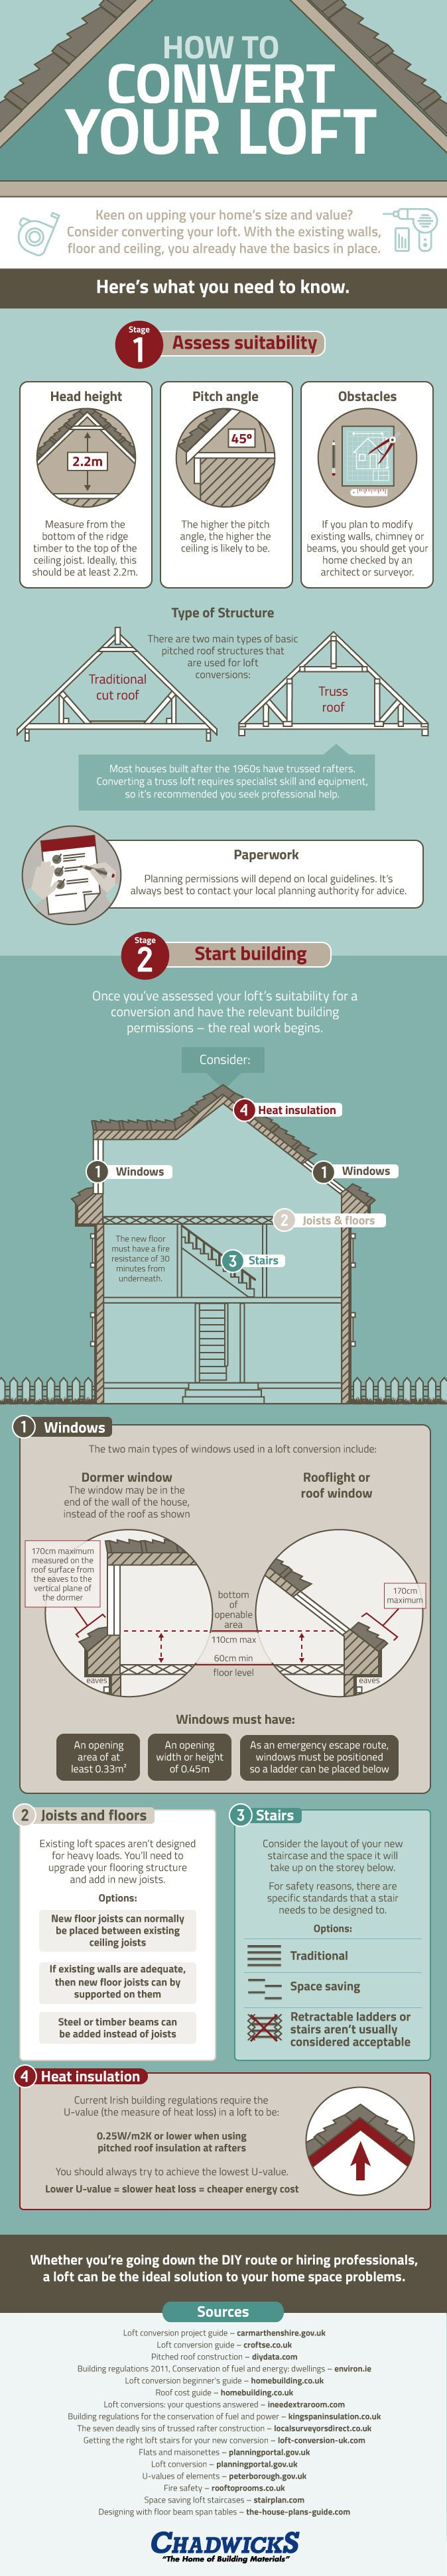 A visual guide to converting your loft [Infographic]